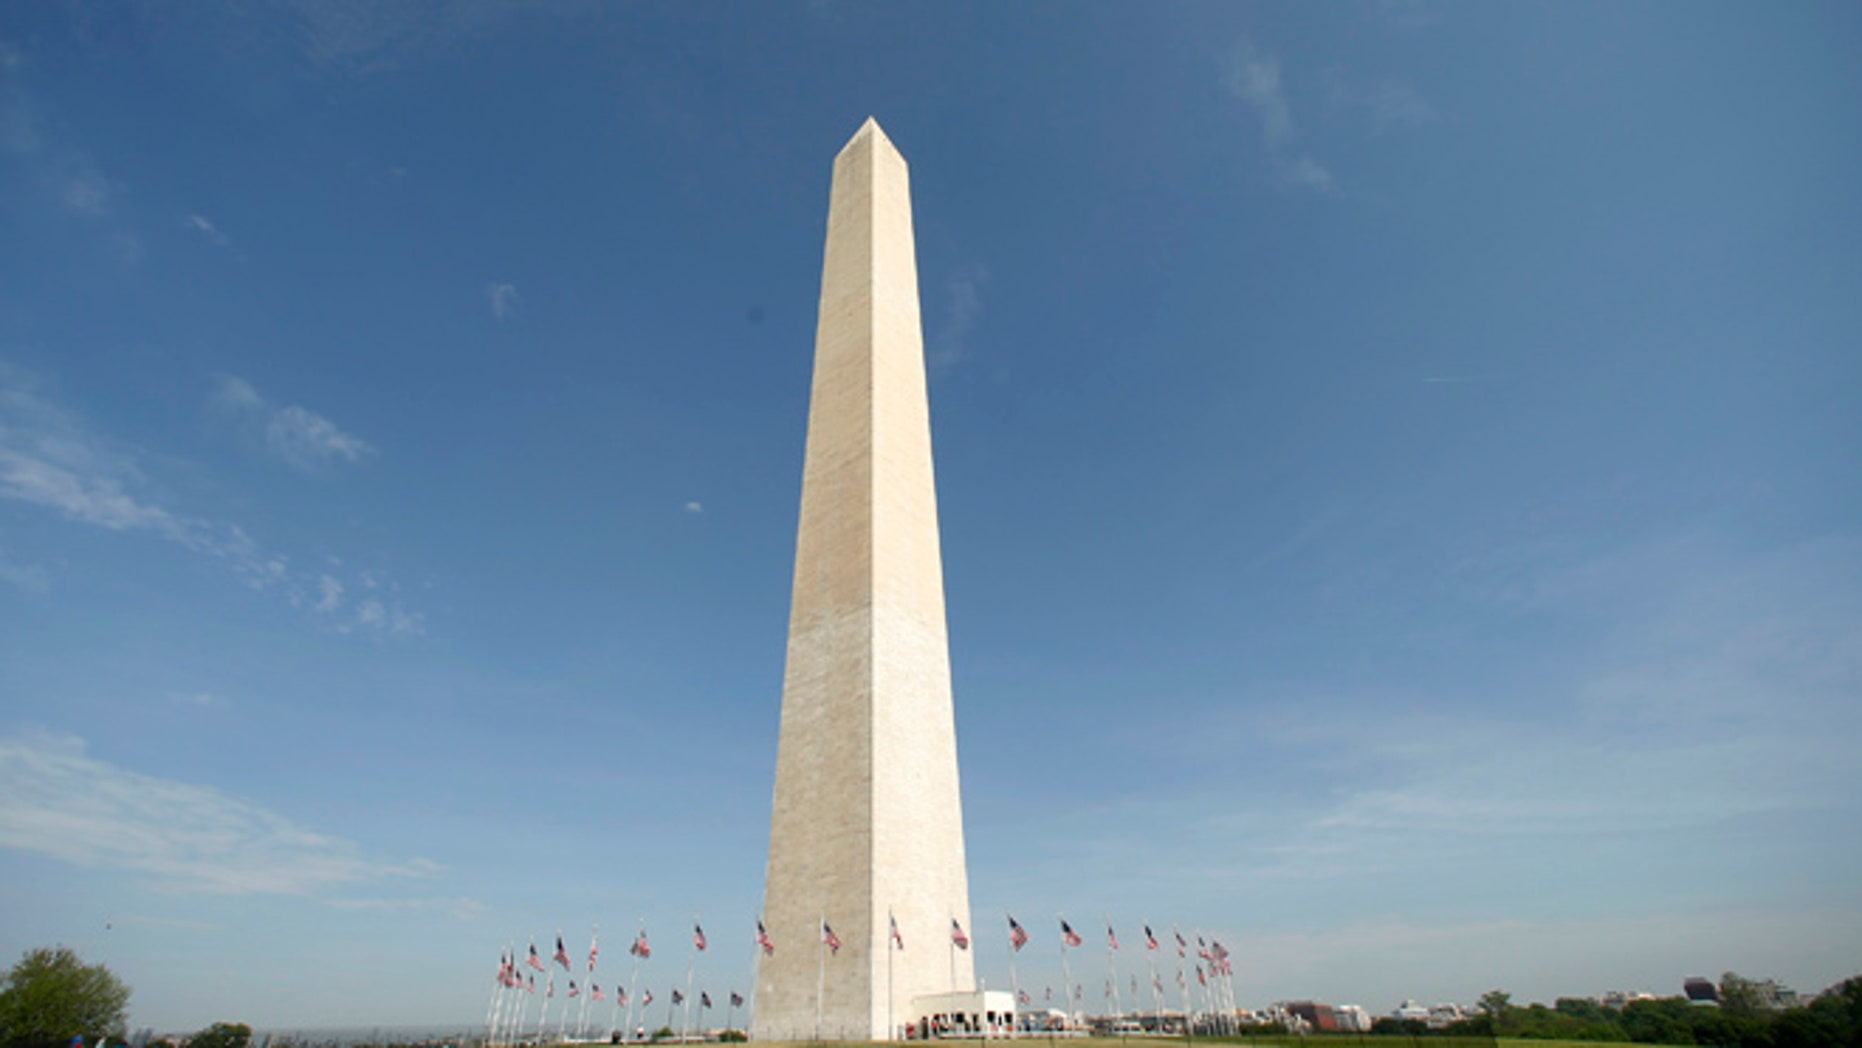 Free from its scaffolding, the Washington Monument is re-opened to the public May 12, 2014. The monument has been closed since 2011 after it suffered widespread damage caused by a 5.8 magnitude earthquake along the East Coast. REUTERS/Kevin Lamarque  (UNITED STATES - Tags: SOCIETY DISASTER) - RTR3OTS0